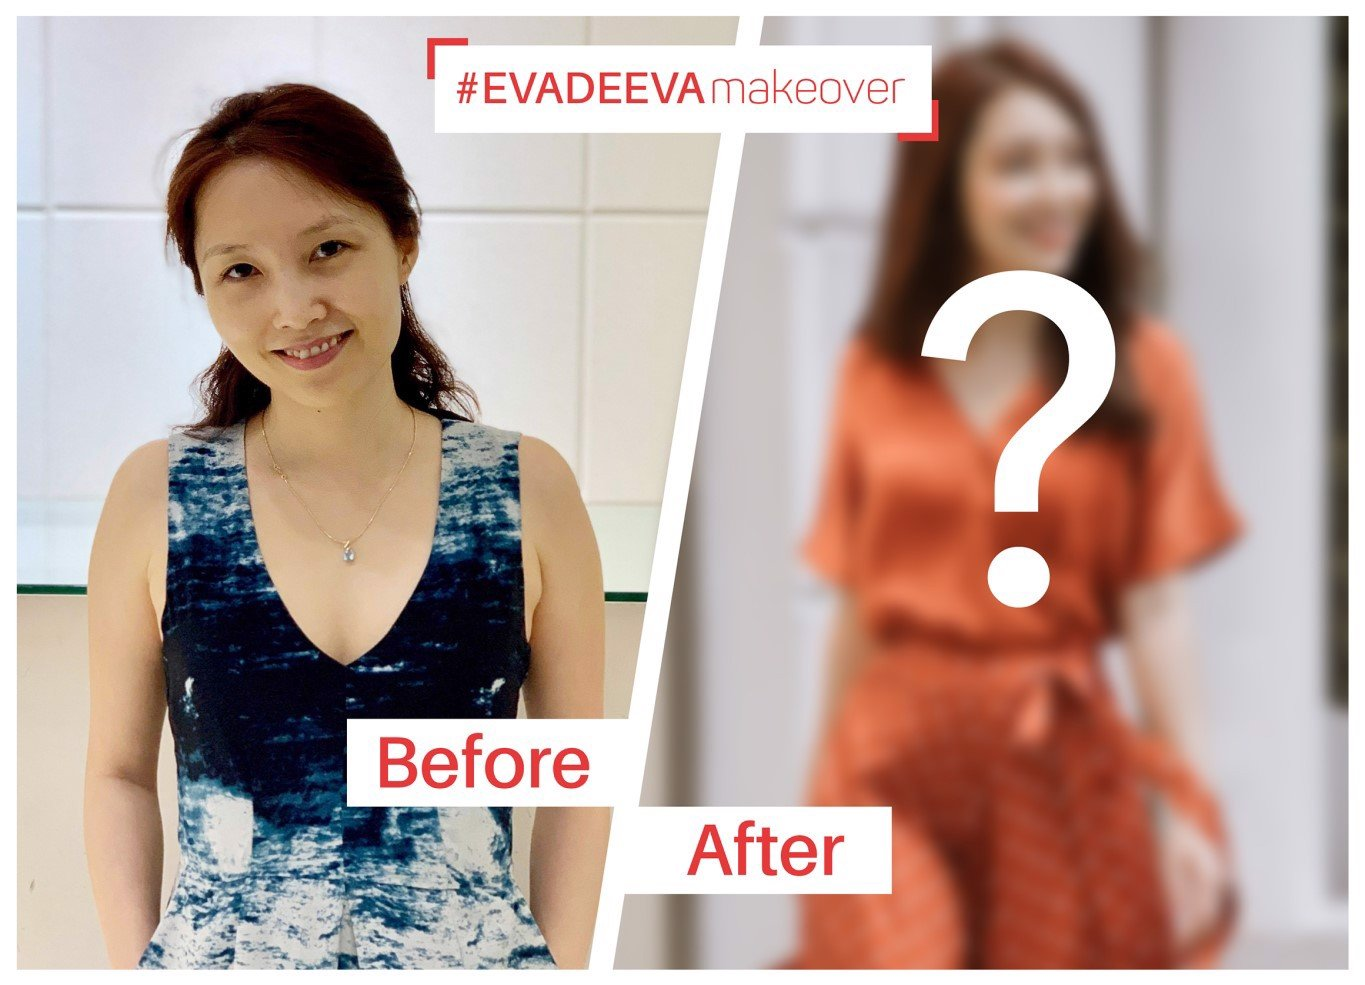 EVA DE EVA | BEFORE & AFTER